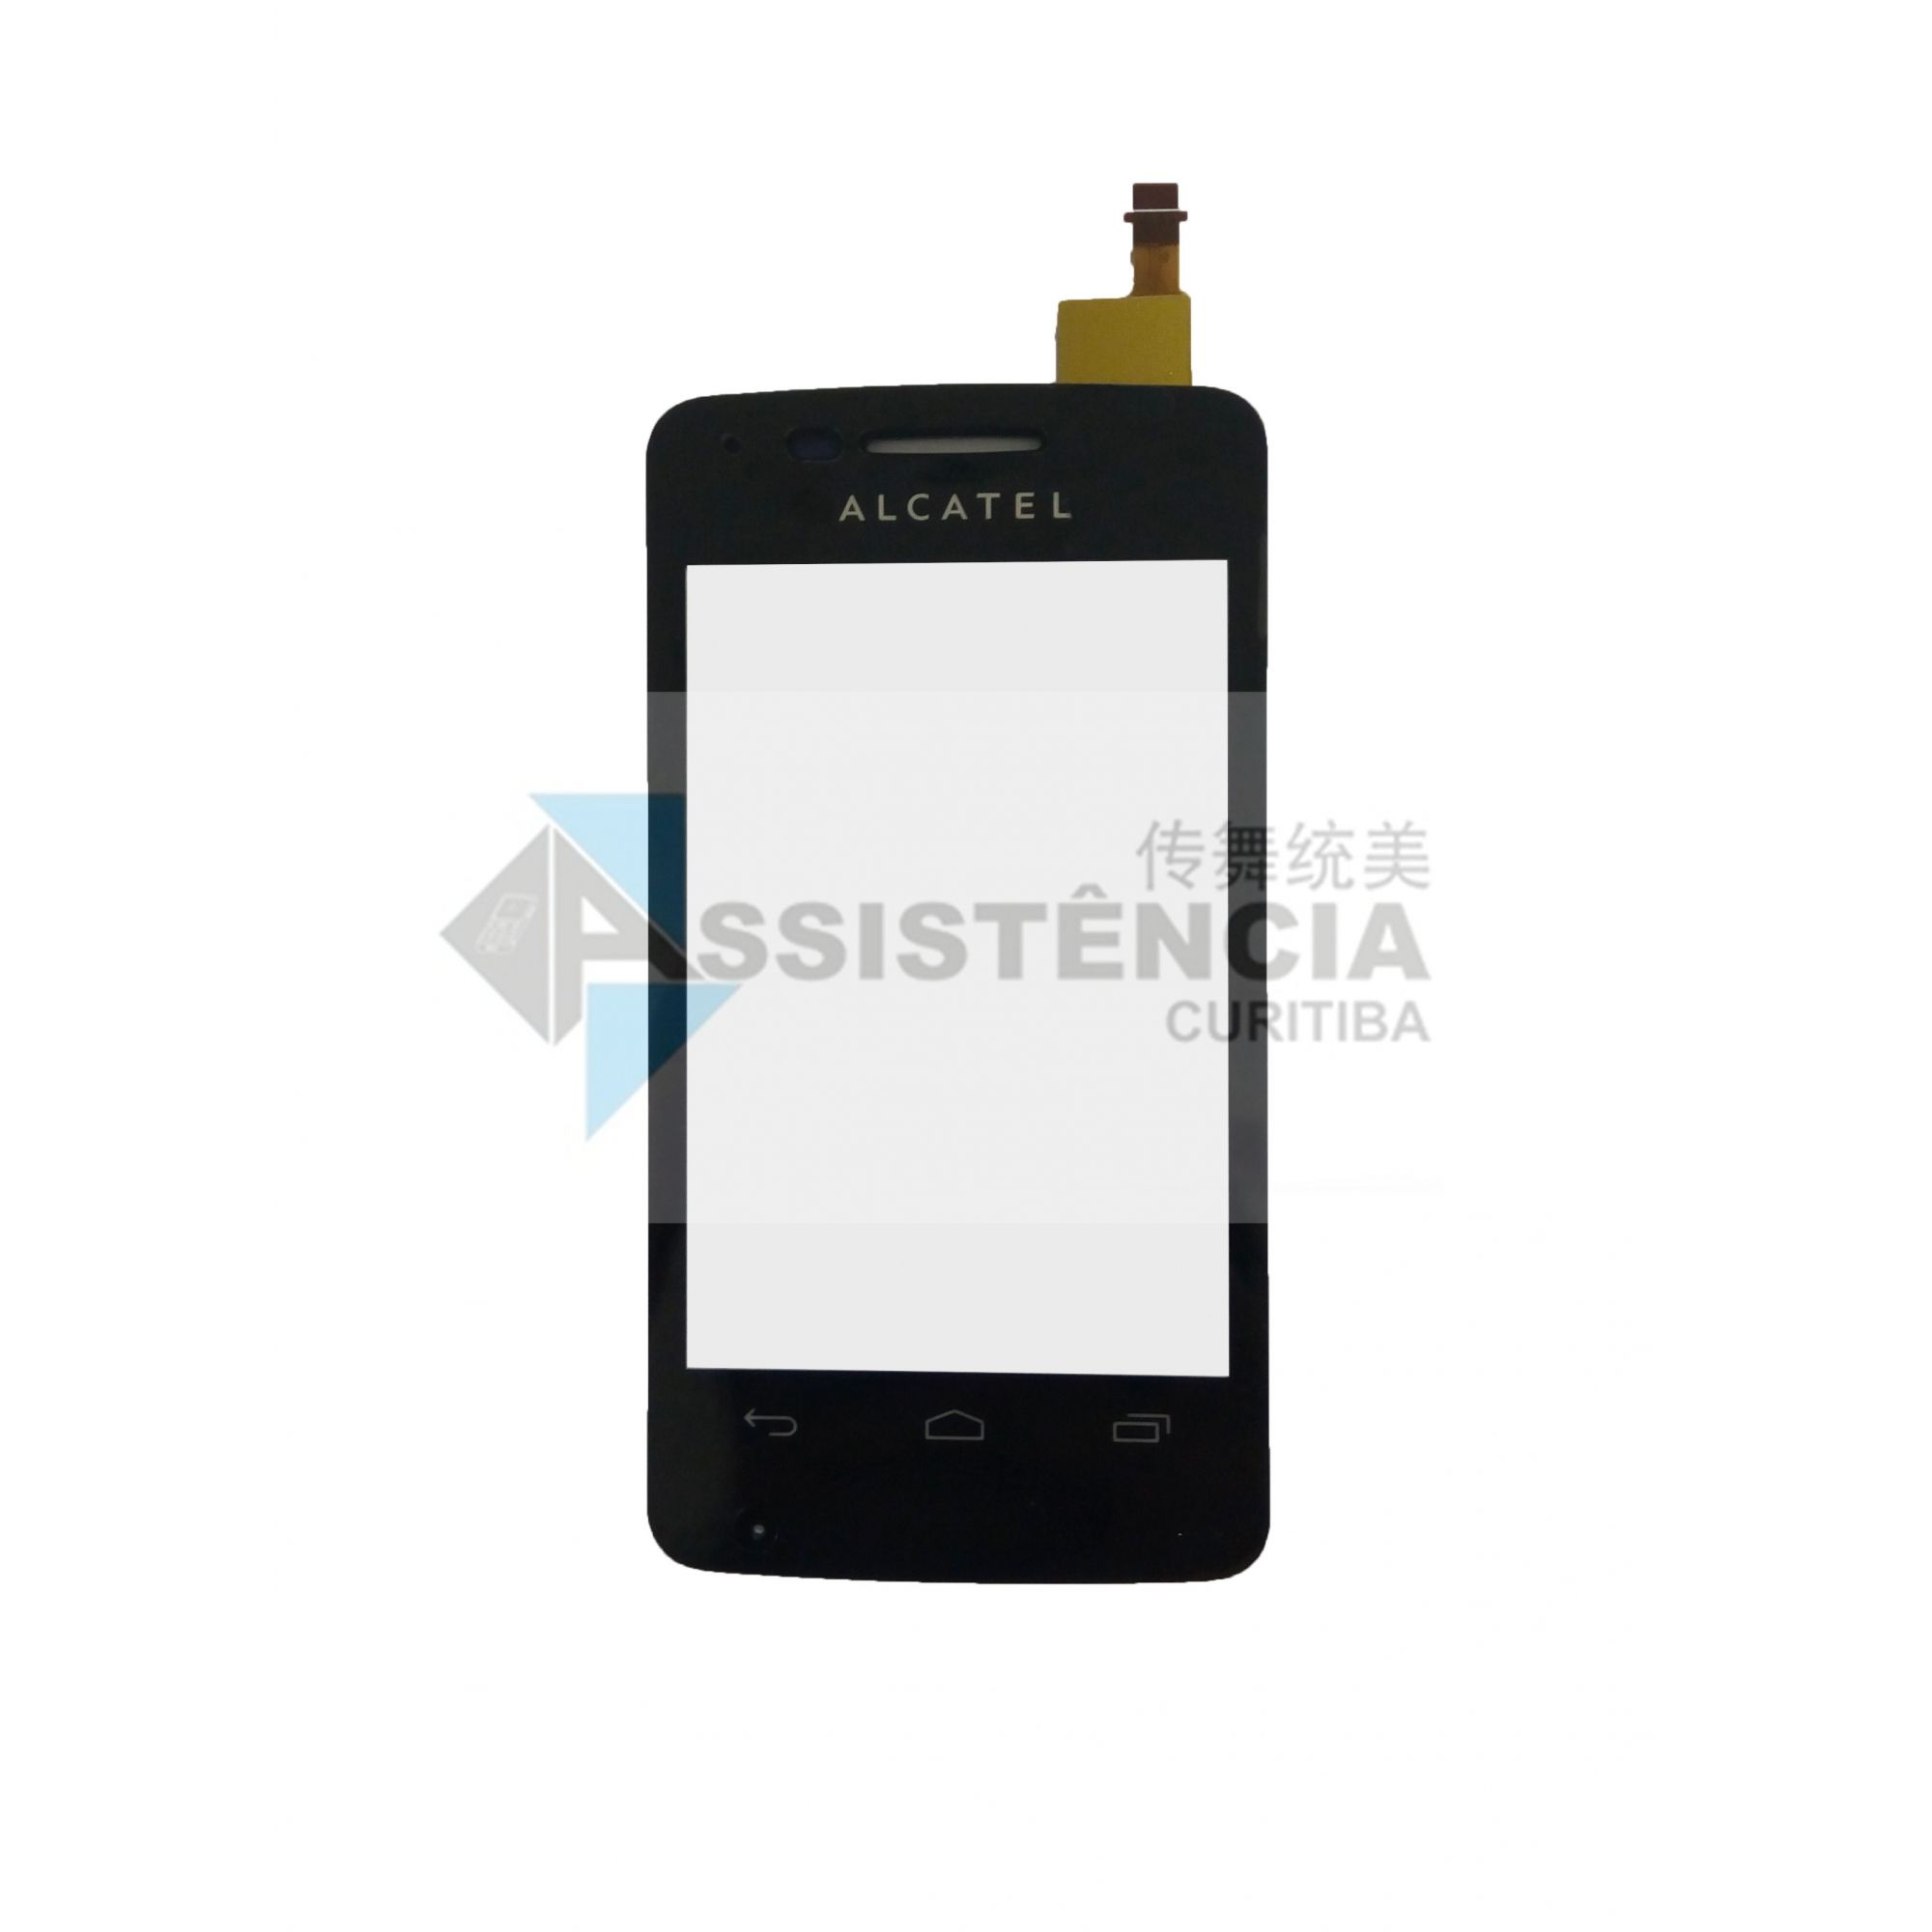 Tela Touch Alcatel Onetouch Pop 4010 Preto